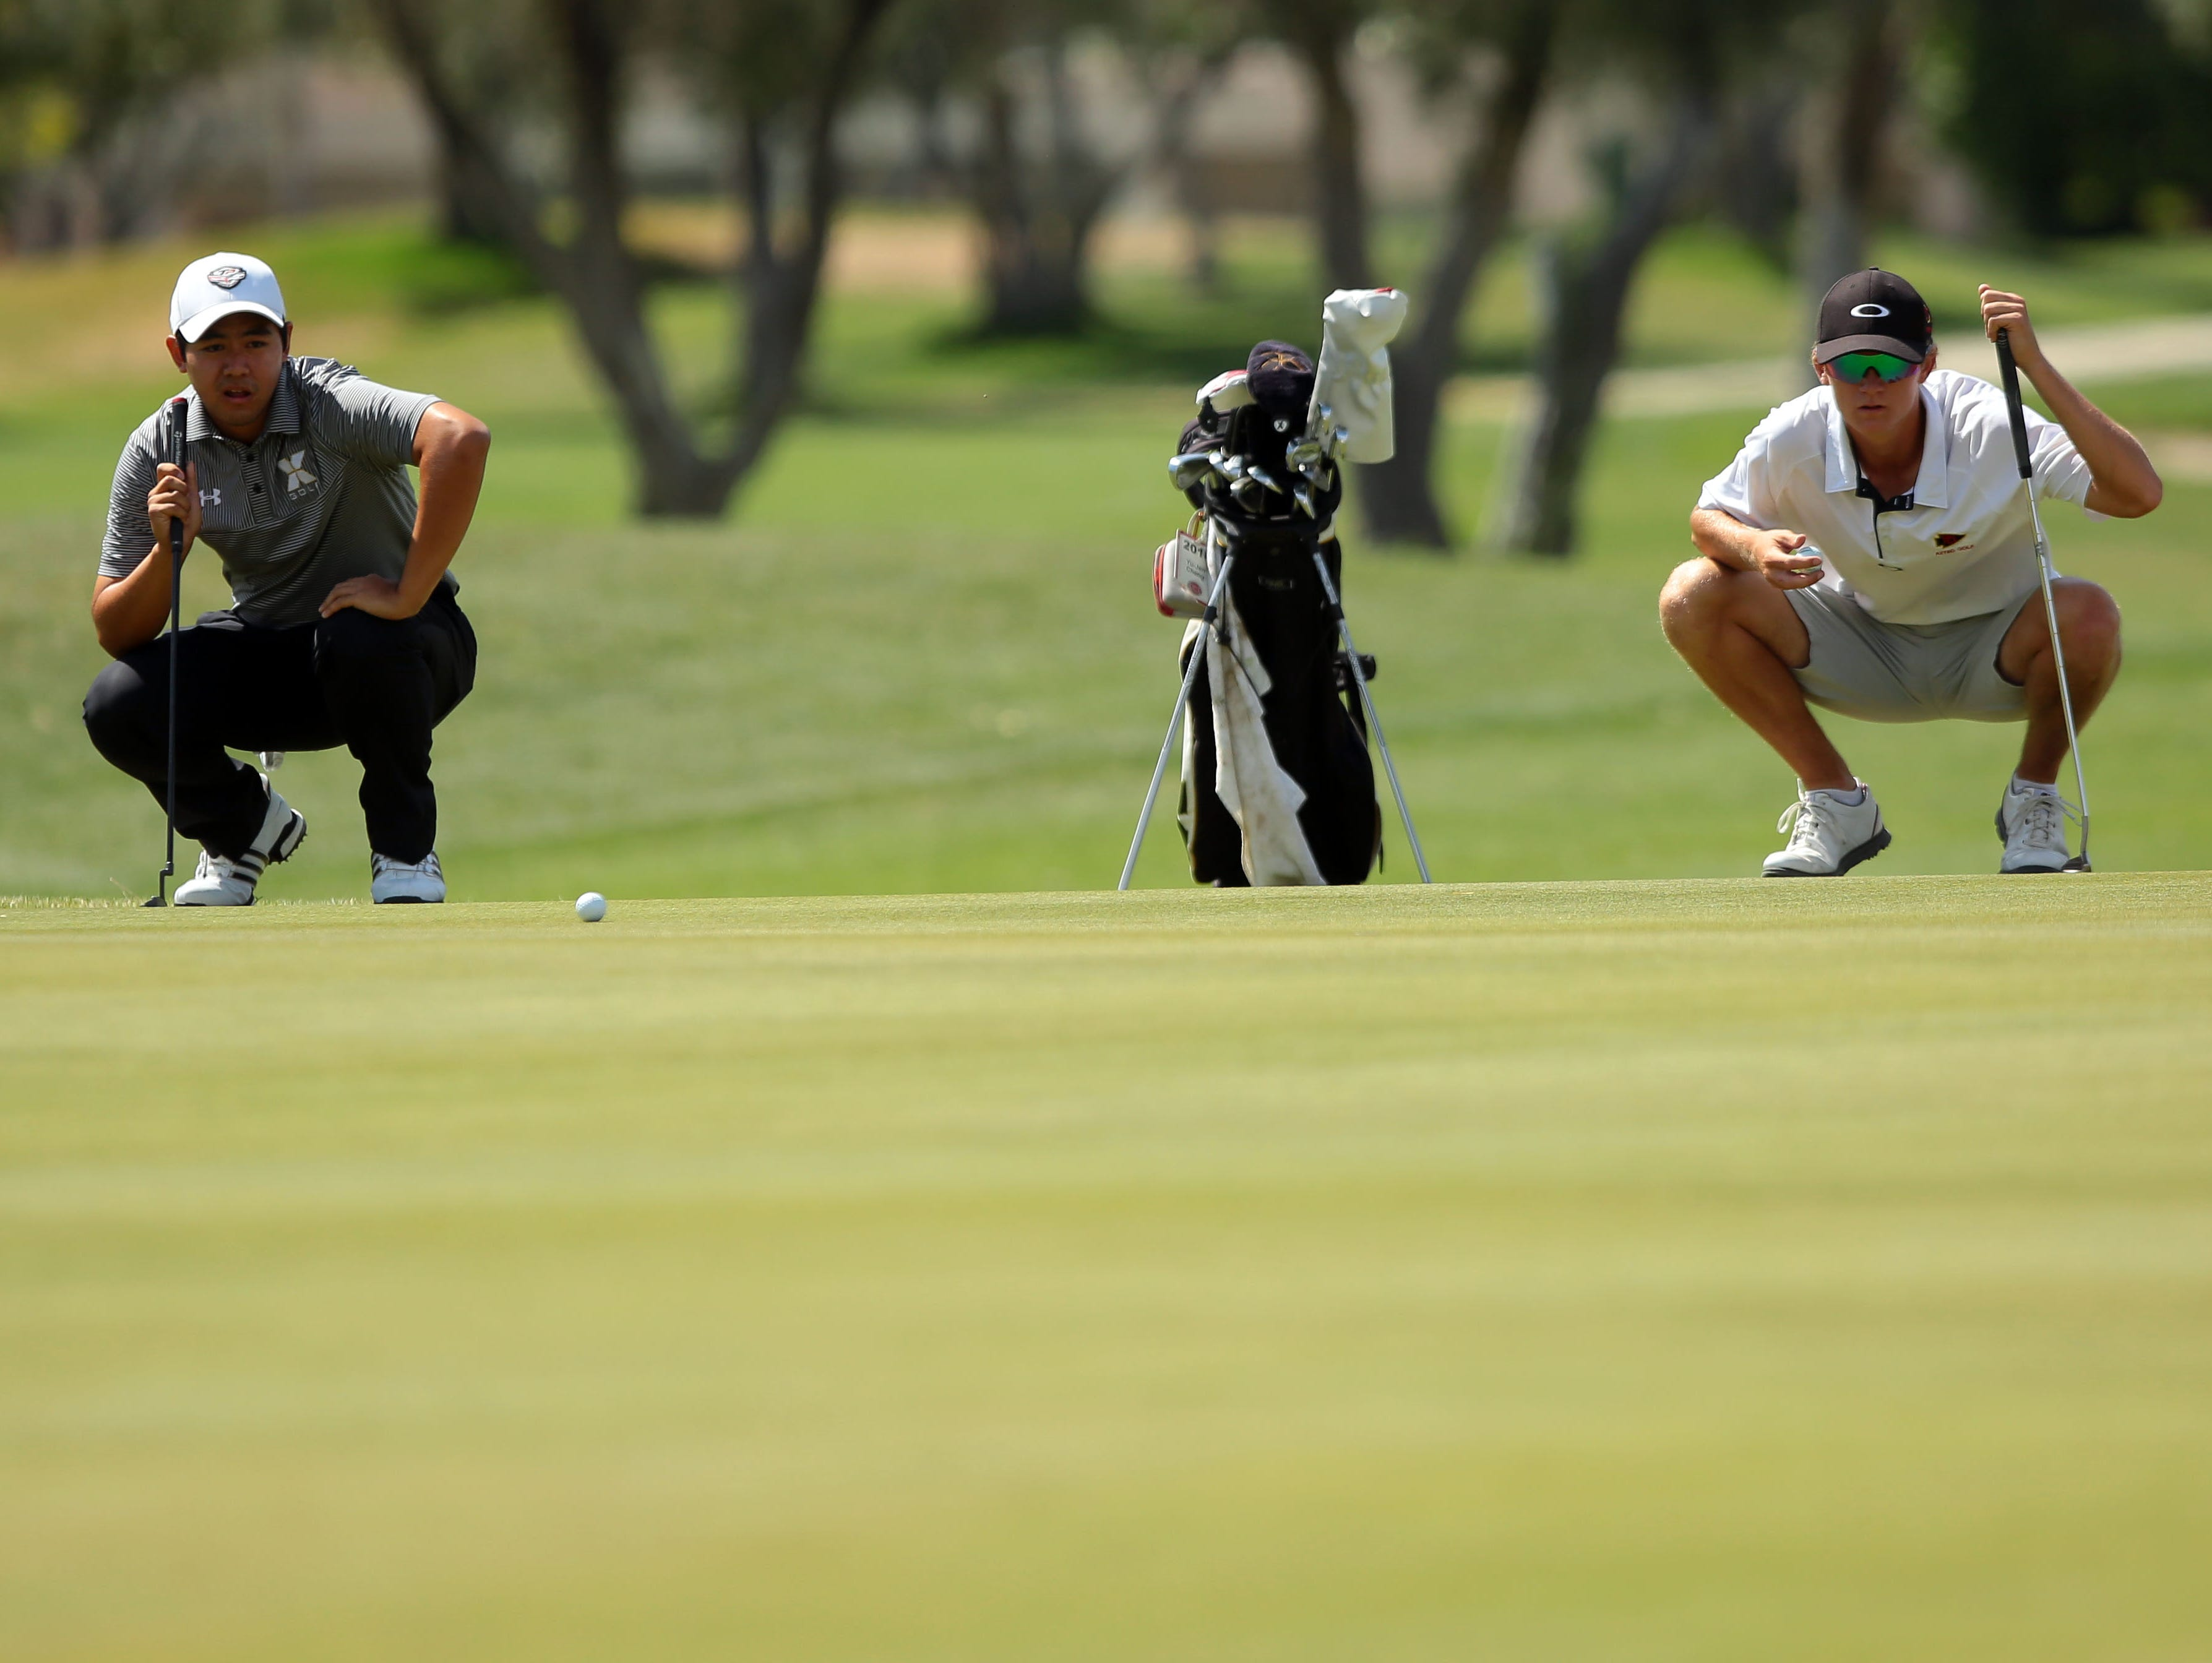 Xavier's Shawn Tsai (left) and Palm Desert's Jake Vincent (right) simultaneously read the ninth green during the Desert Valley League boys golf individual championship tournament Thursday, April 28, 2016, on the North Course at Indian Canyons Golf Resort in Palm Springs, Calif.